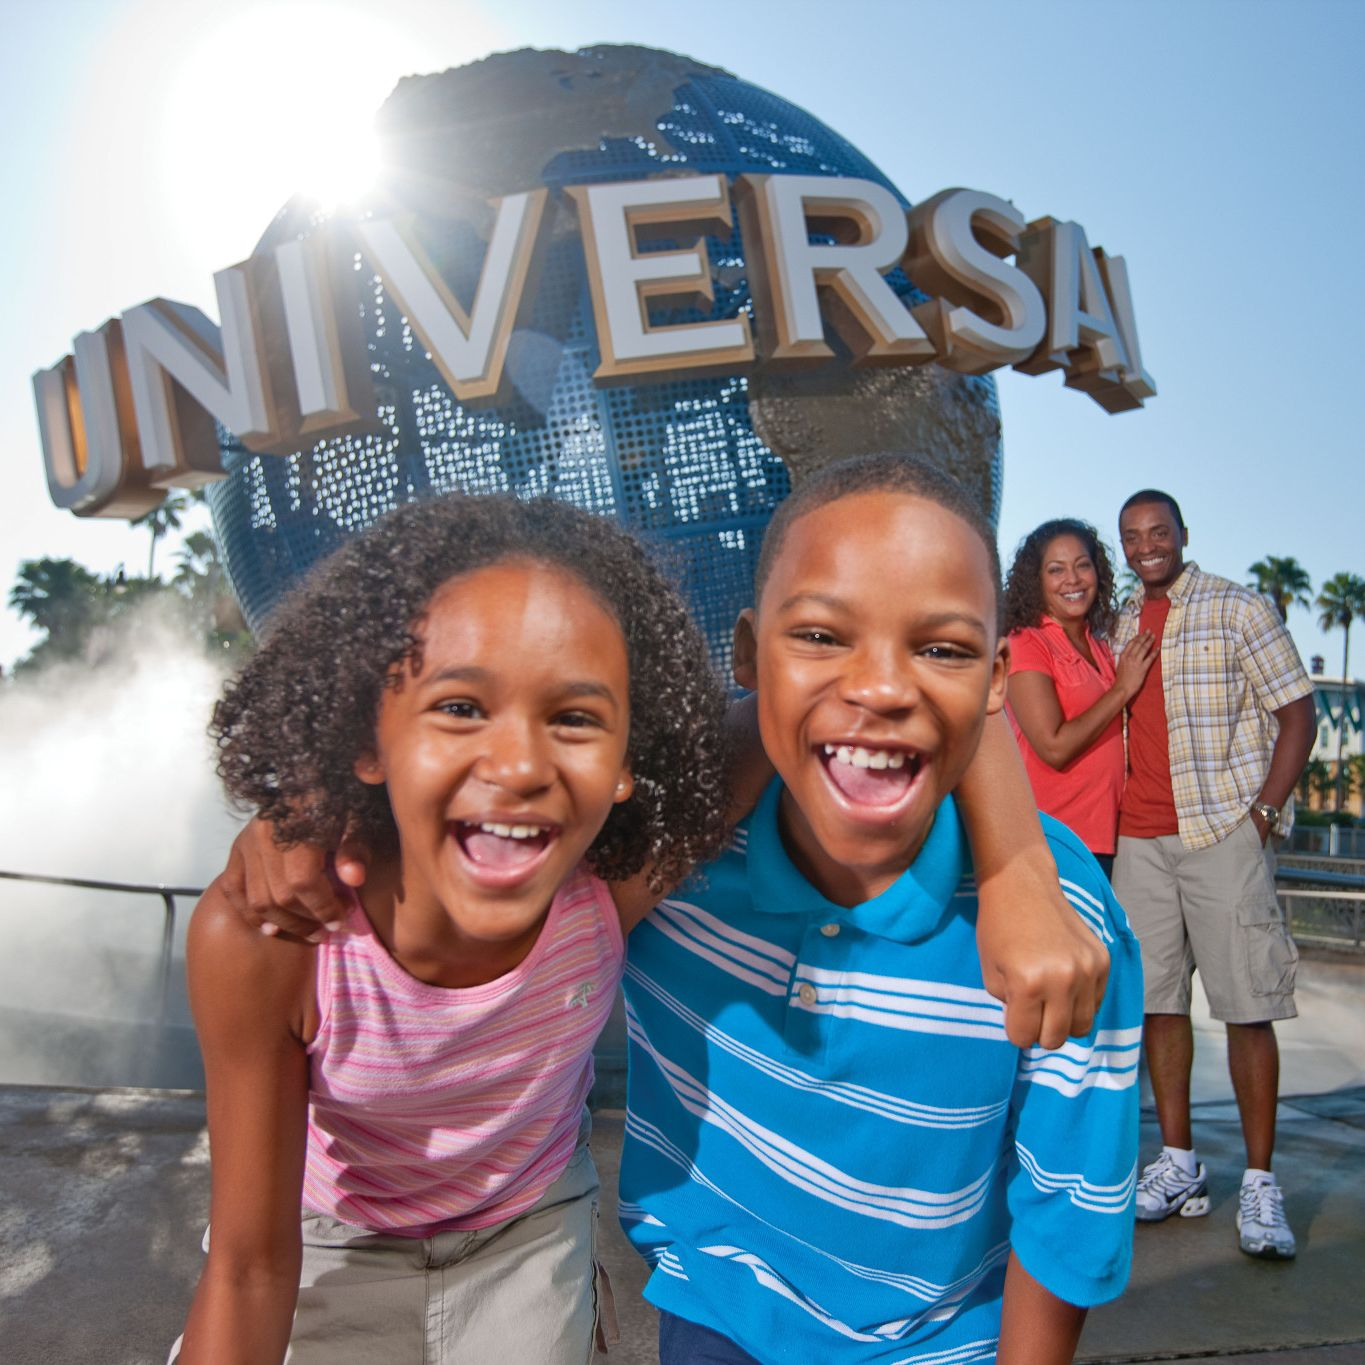 Family posing for a photo in front of the famous globe at Universal Orlando Resort.